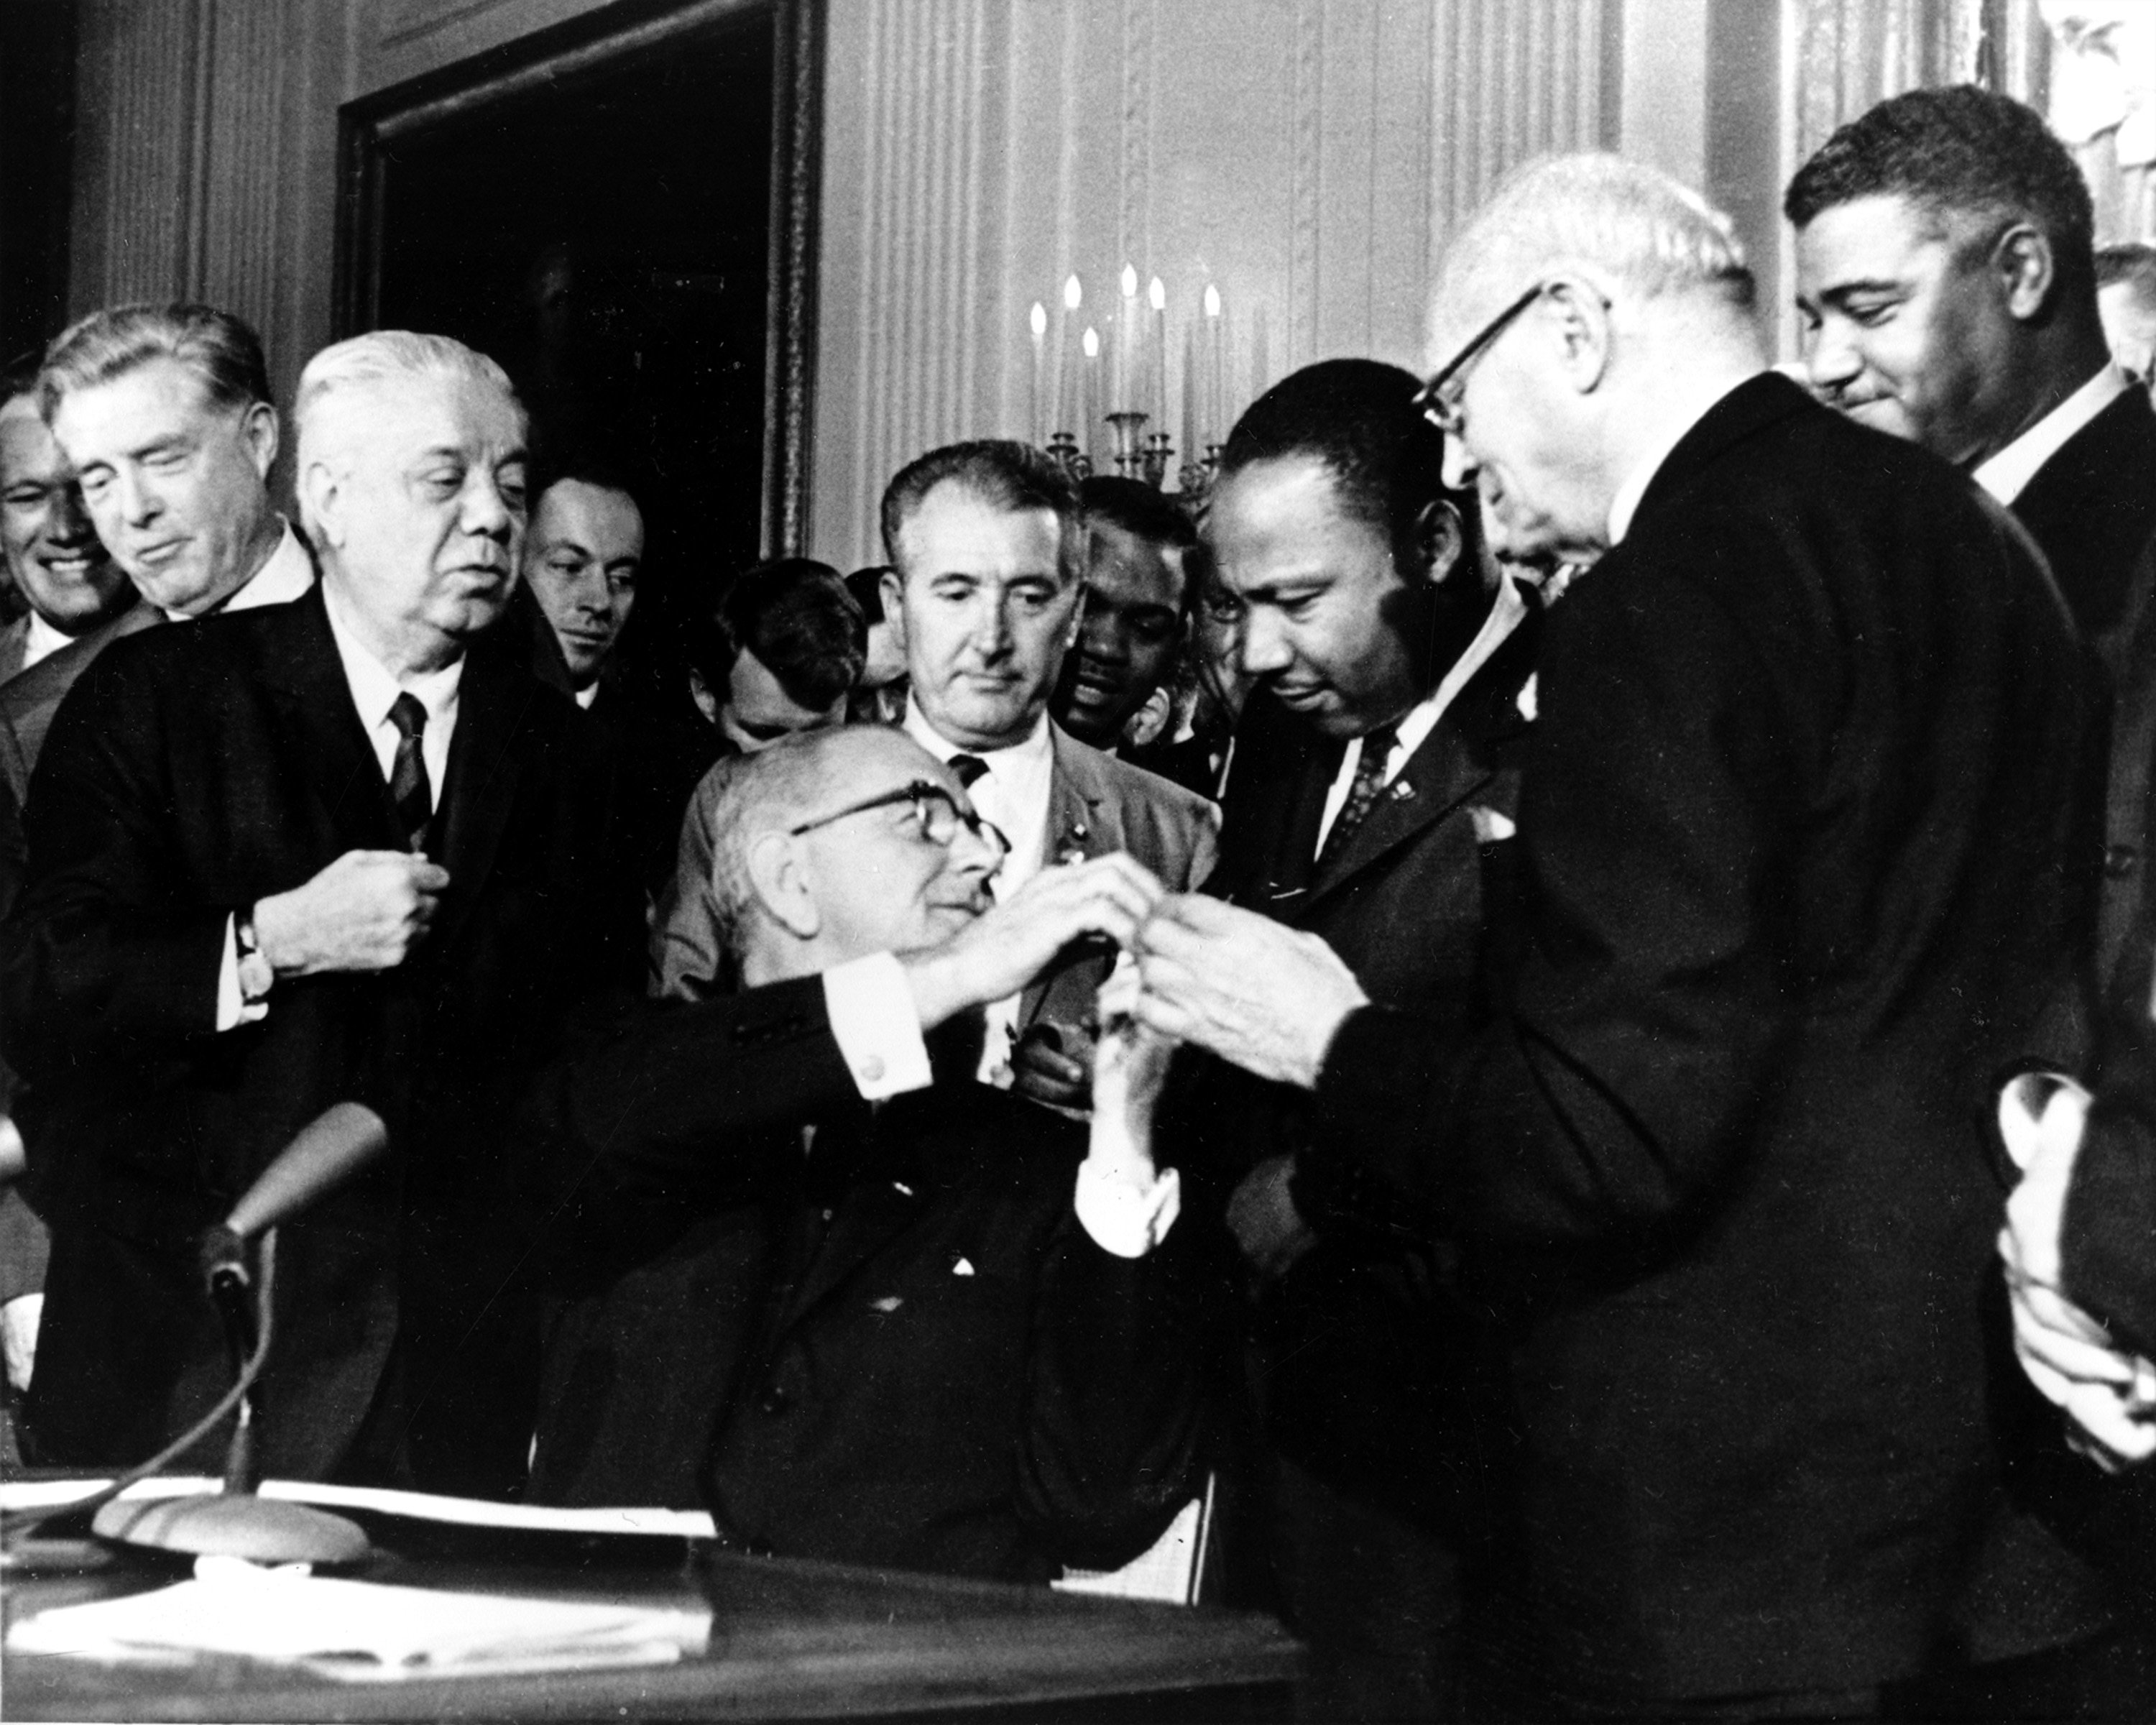 Martin Luther King accepting signing pen from Lyndon Johnson, seated, as others look on (© AP Images)